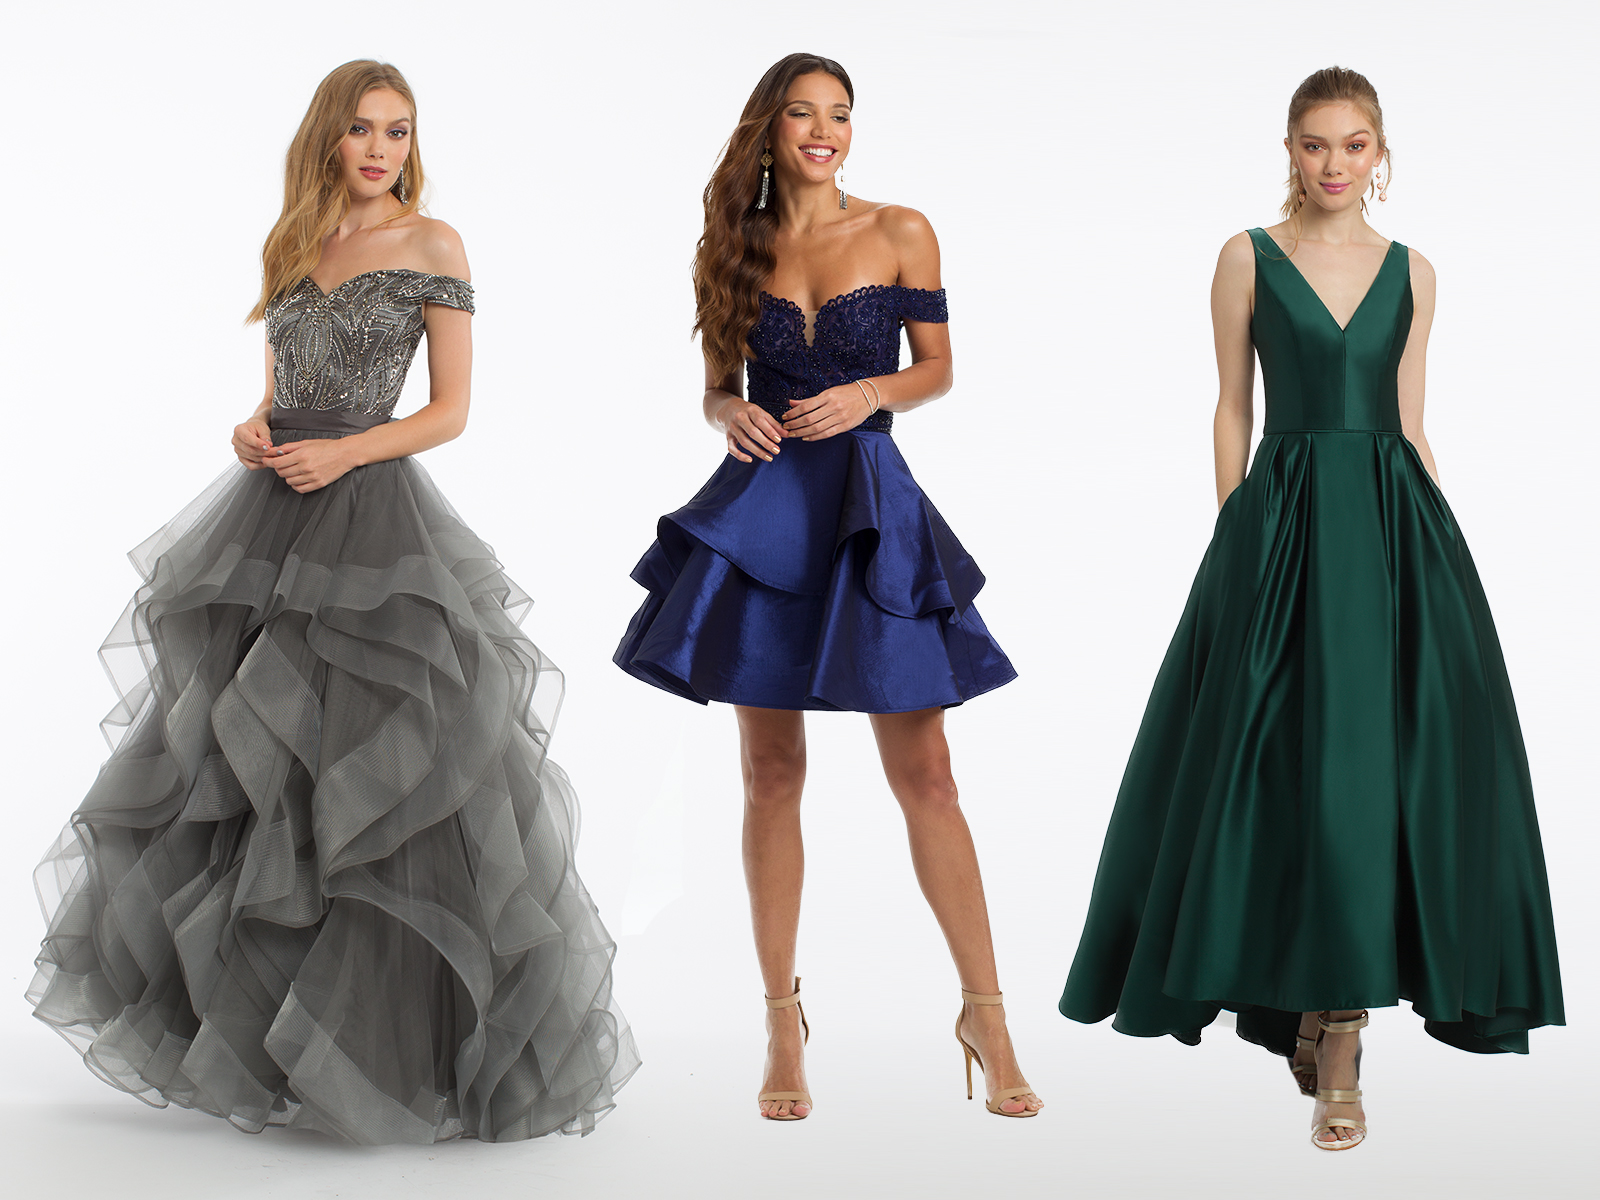 Evening Dresses by Camille La Vie